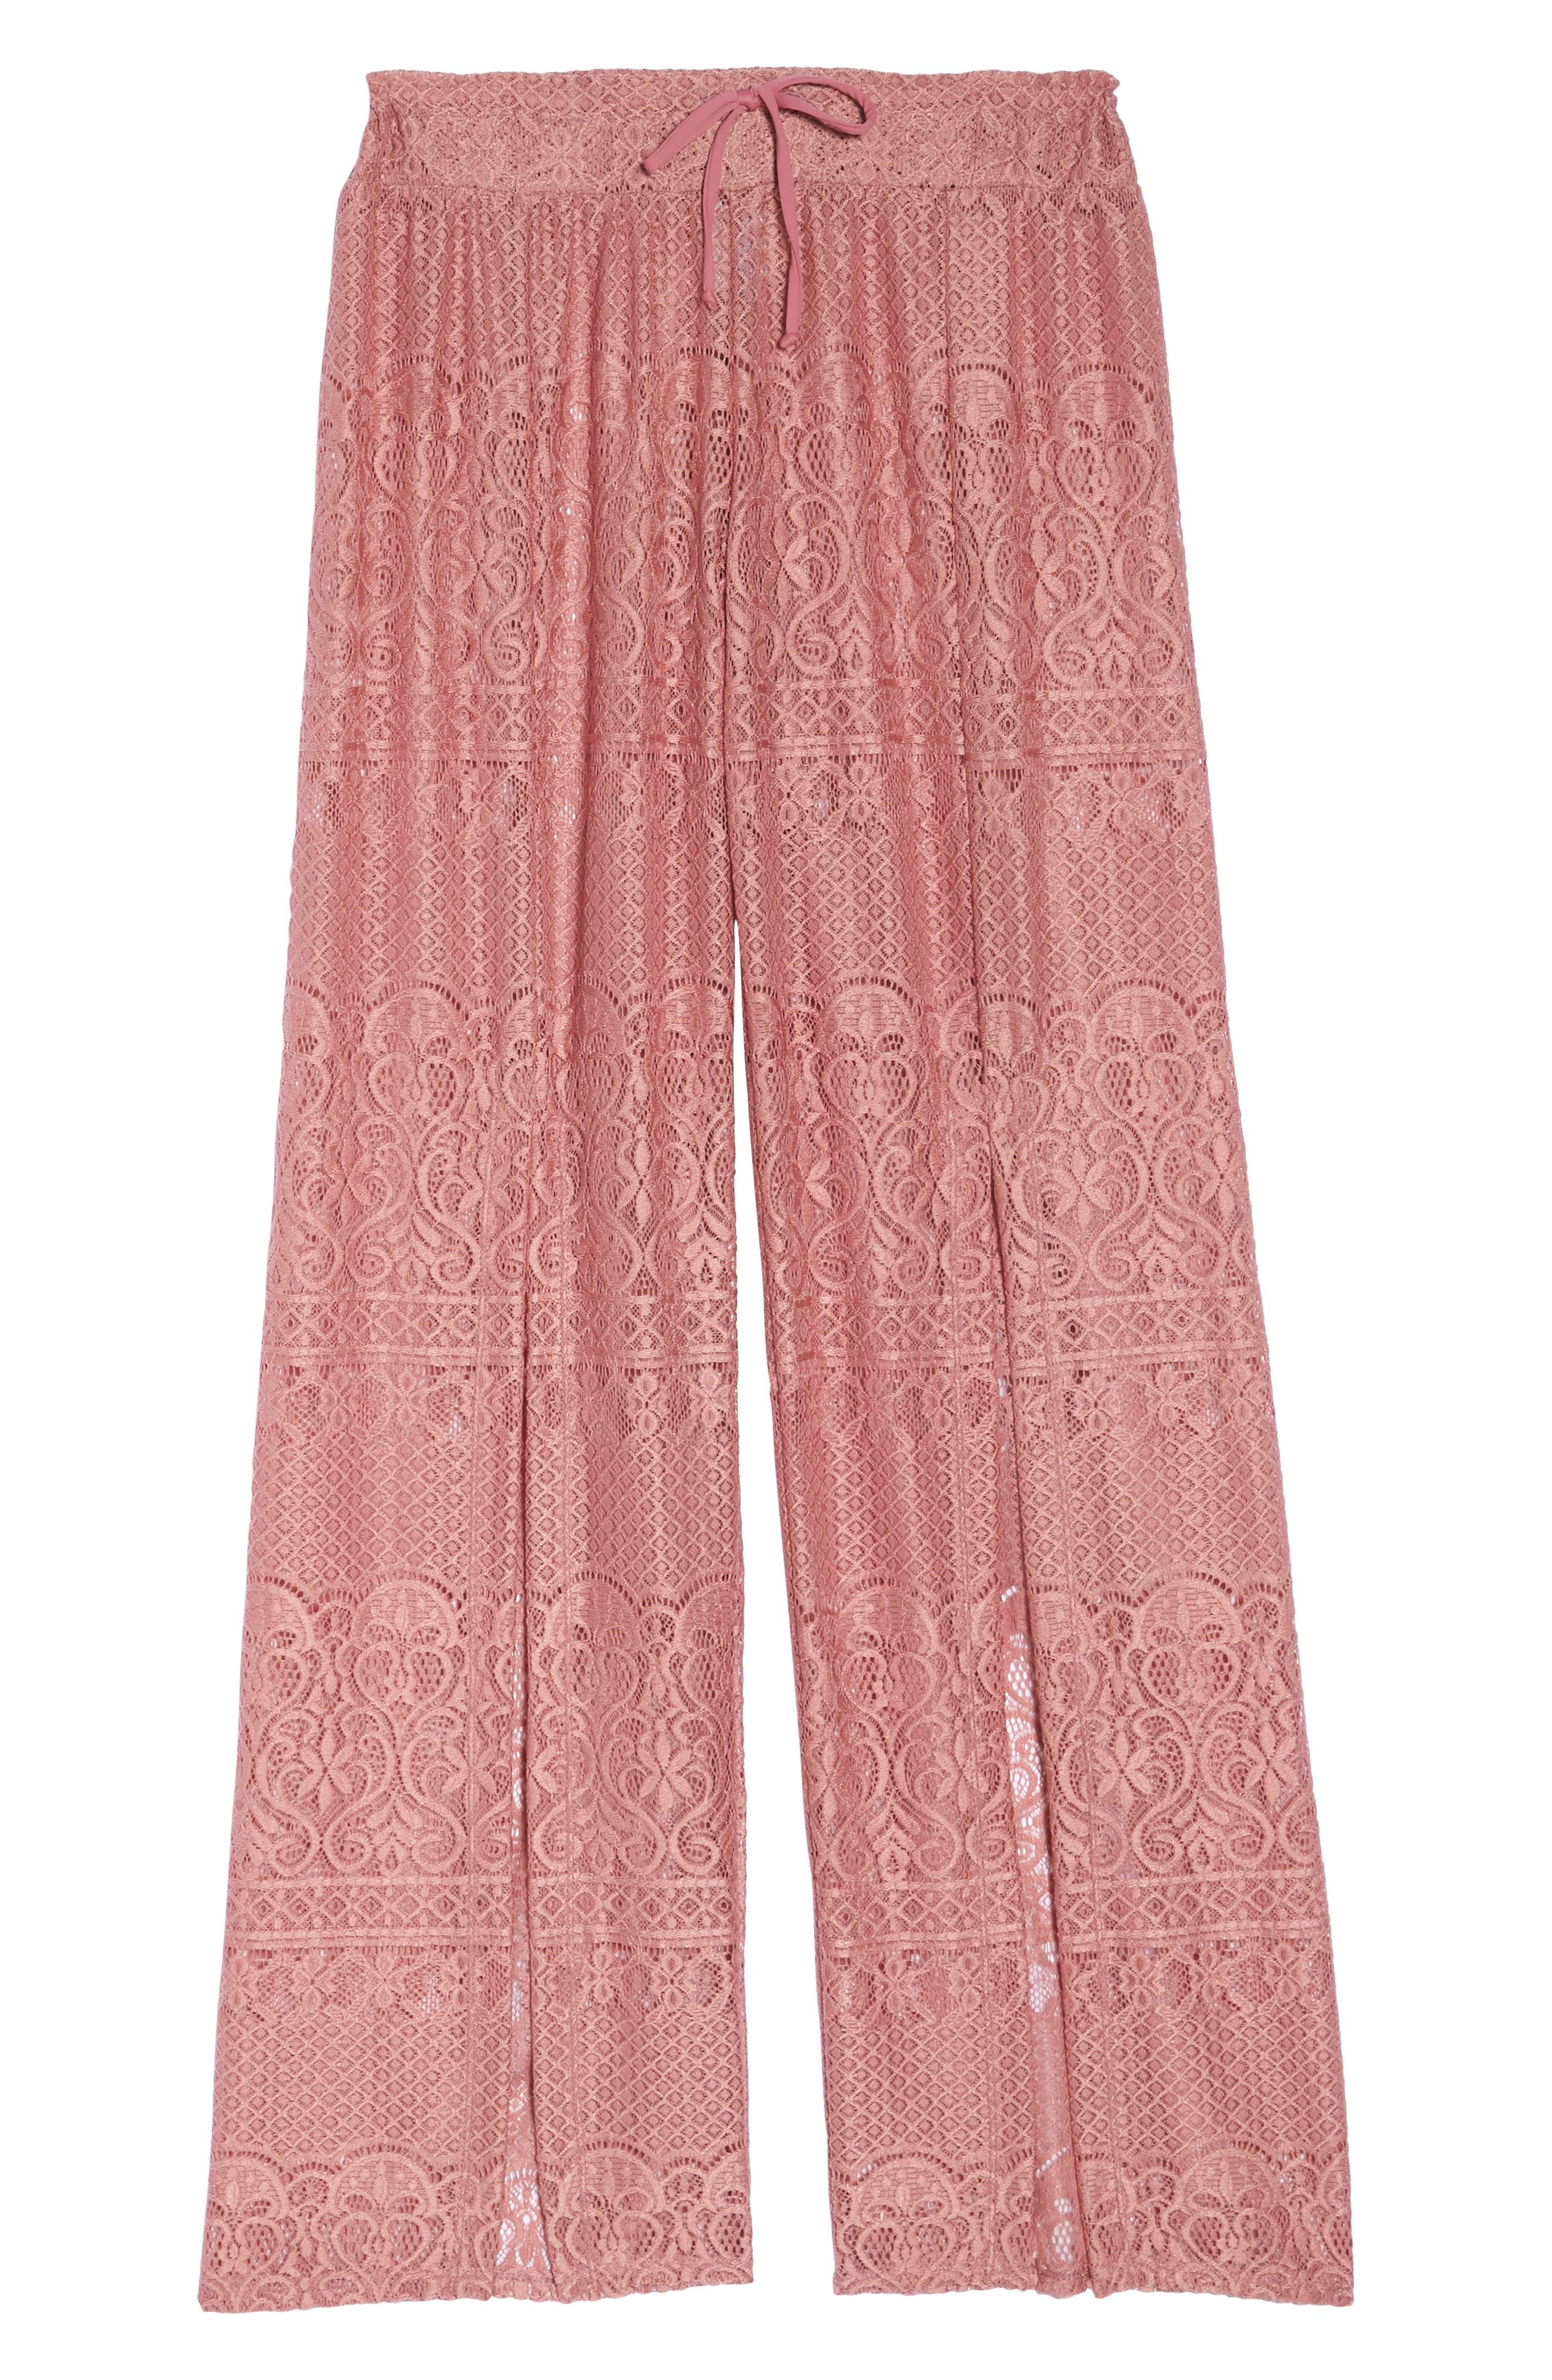 About Lace Cover-Up Pants,                             Alternate thumbnail 6, color,                             DUSTY ROSE